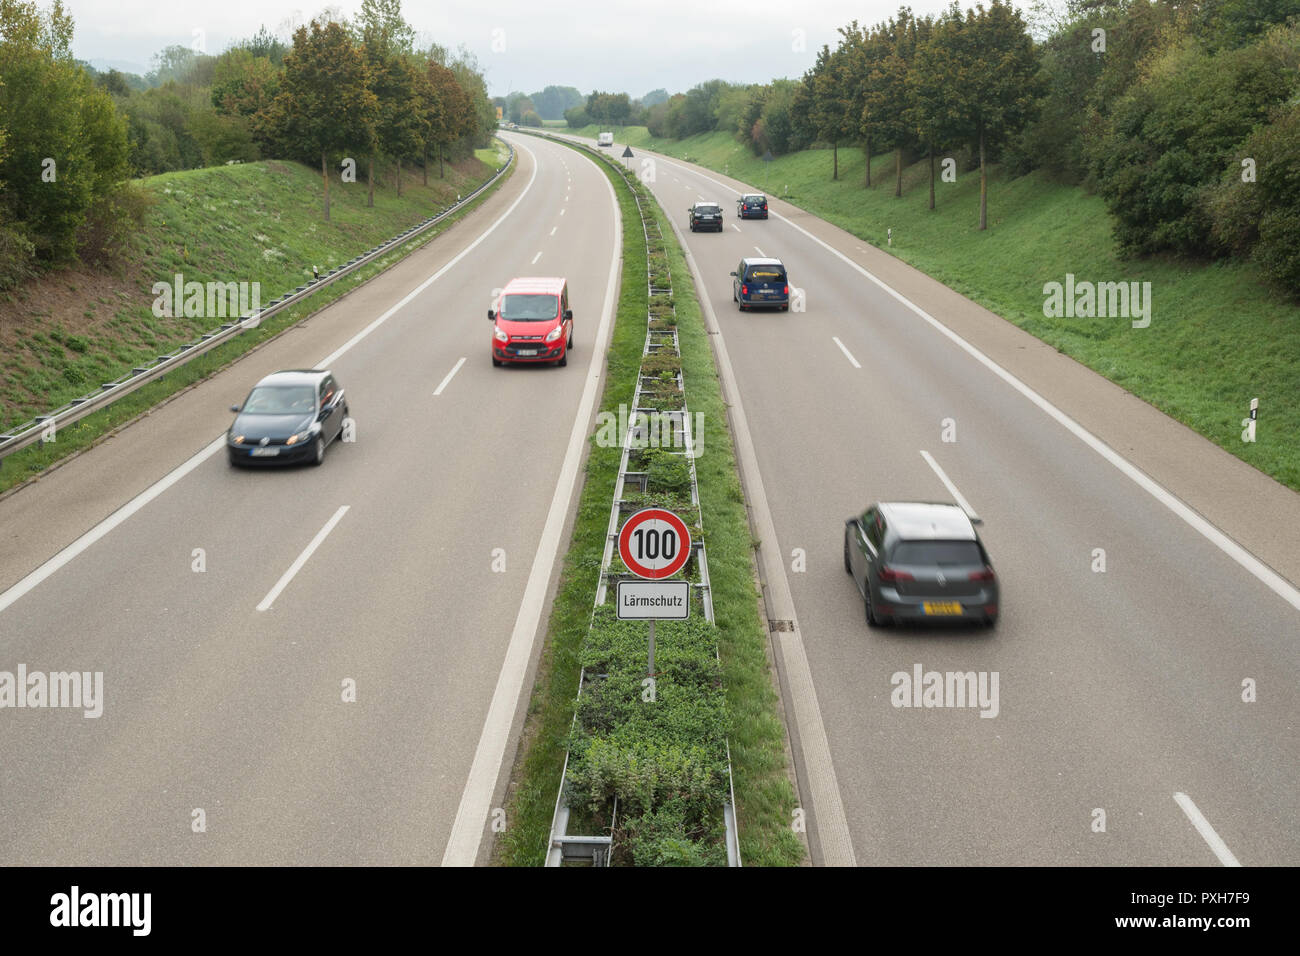 road traffic noise reduction - reduced speed limit on German autobahn to reduce noise pollution - Freiburg, Germany, Europe - Stock Image